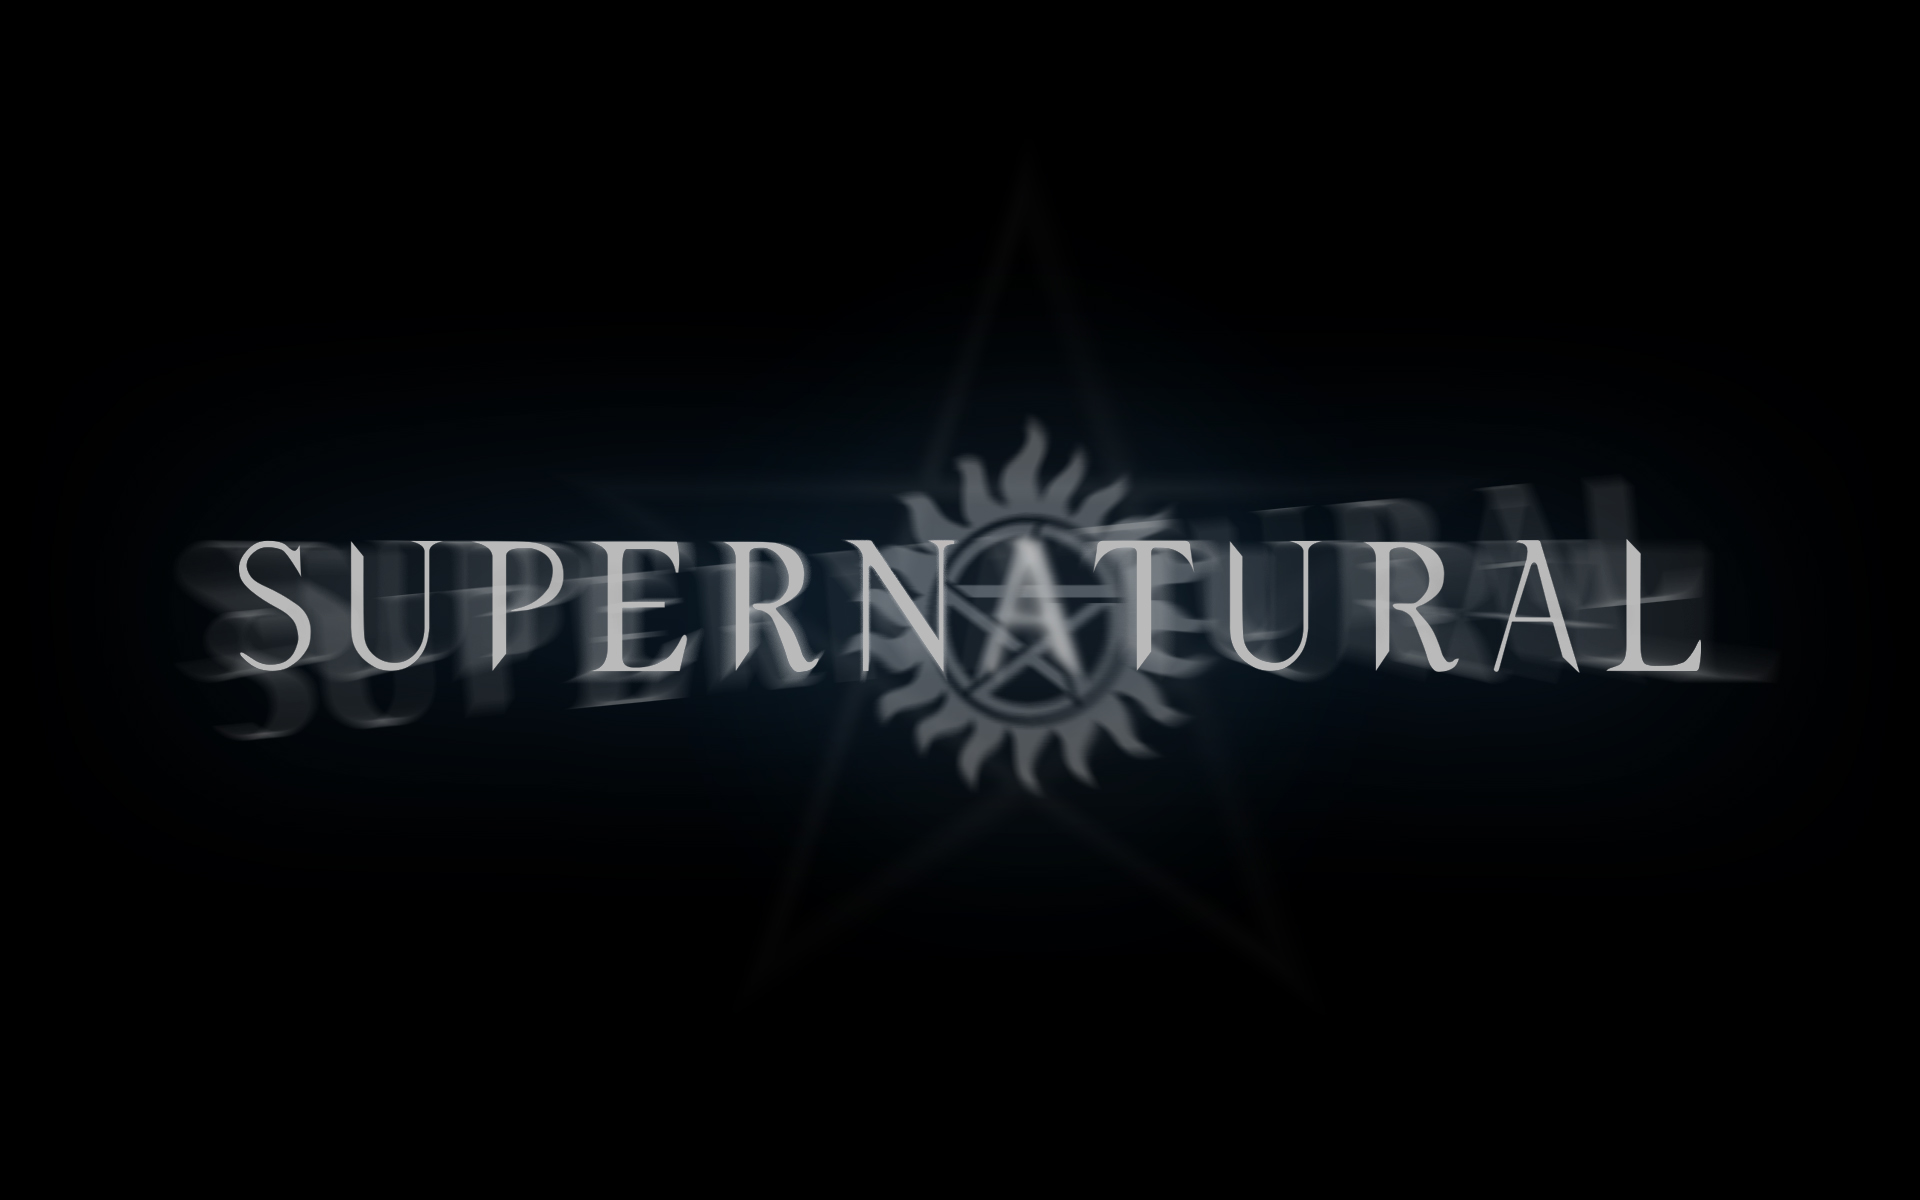 Logo Supernatural Wallpaper Wallpapers Backgrounds Images Art 1920x1200